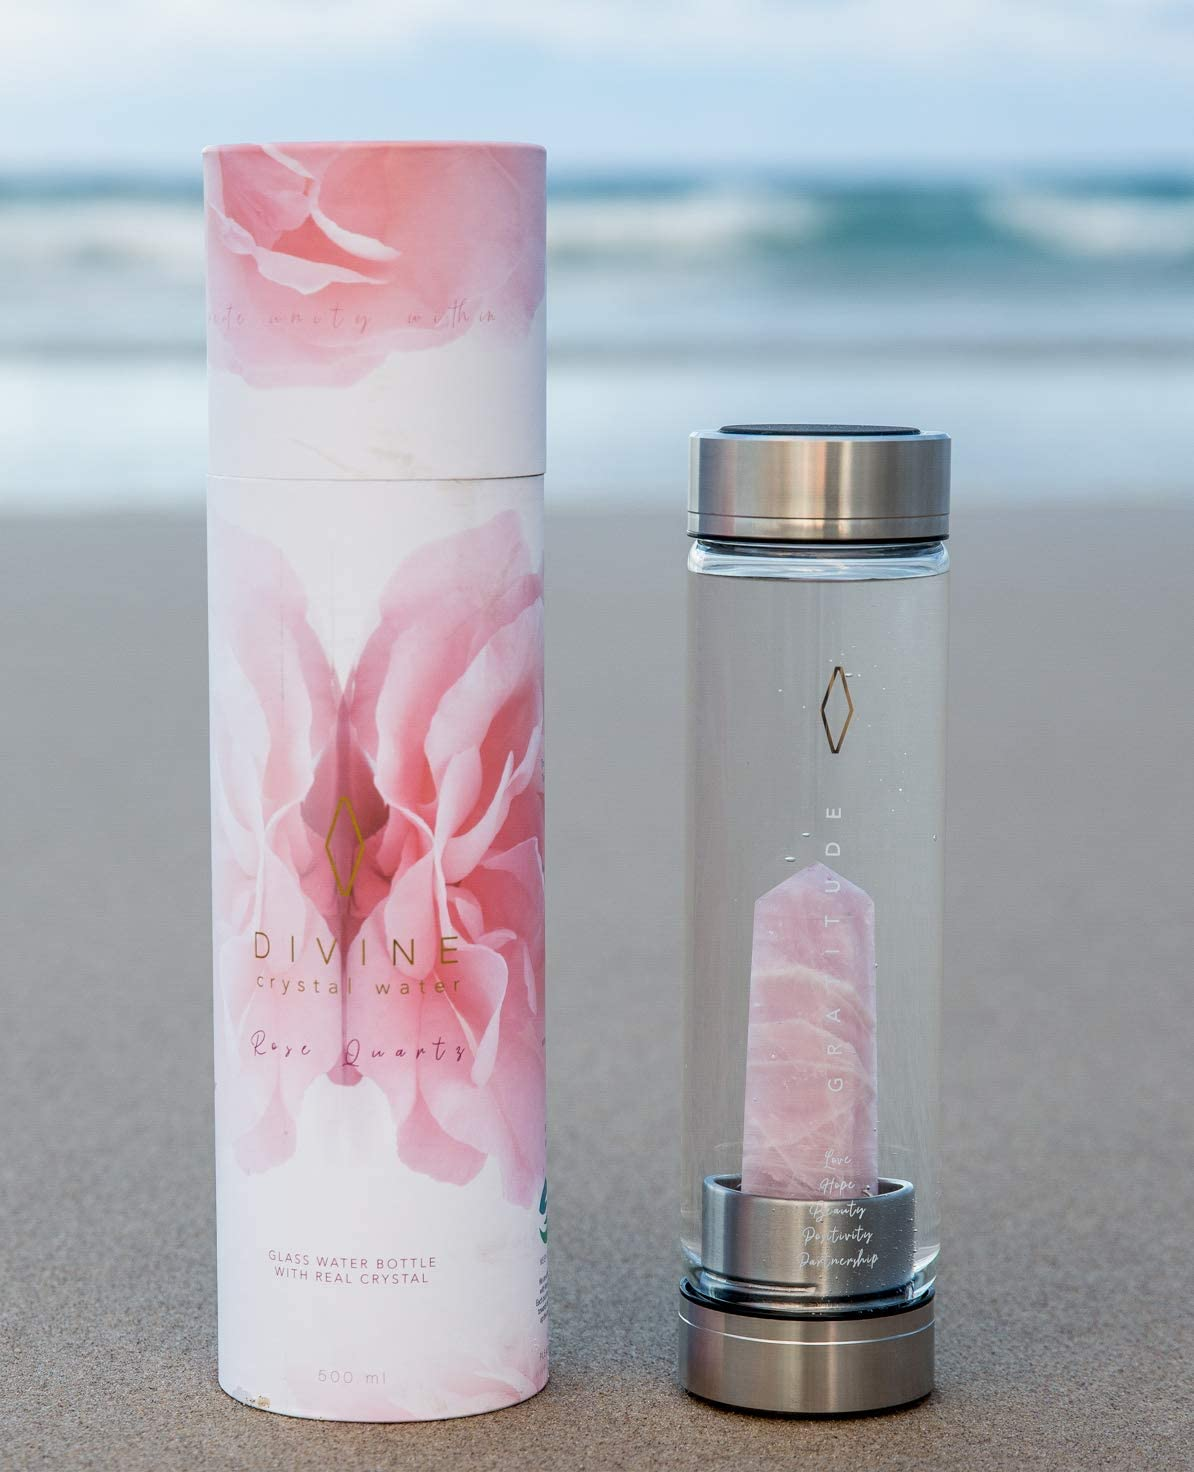 Rose Quartz Crystal Water Bottle for Healing and Wellness - Beautiful Quality Glass Bottle, Gold engraving: benefits of crystal & healing power of GRATITUDE. Portable use, Large Crystals. Gift Ready.